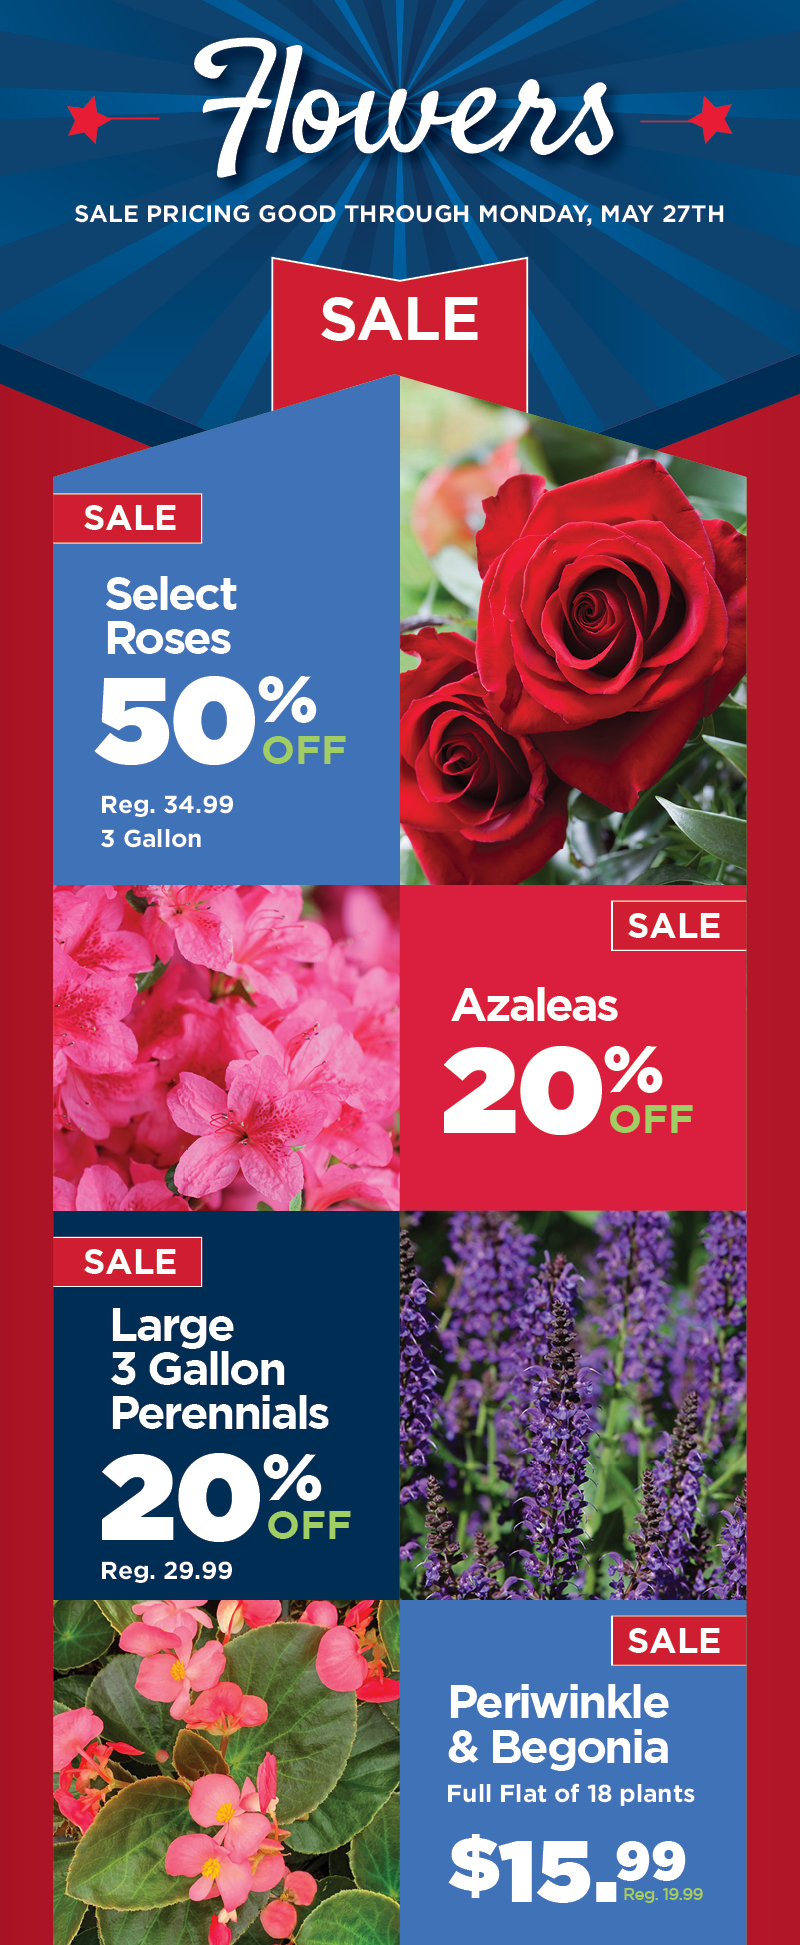 Memorial Day Sale - Flowers - Mobile